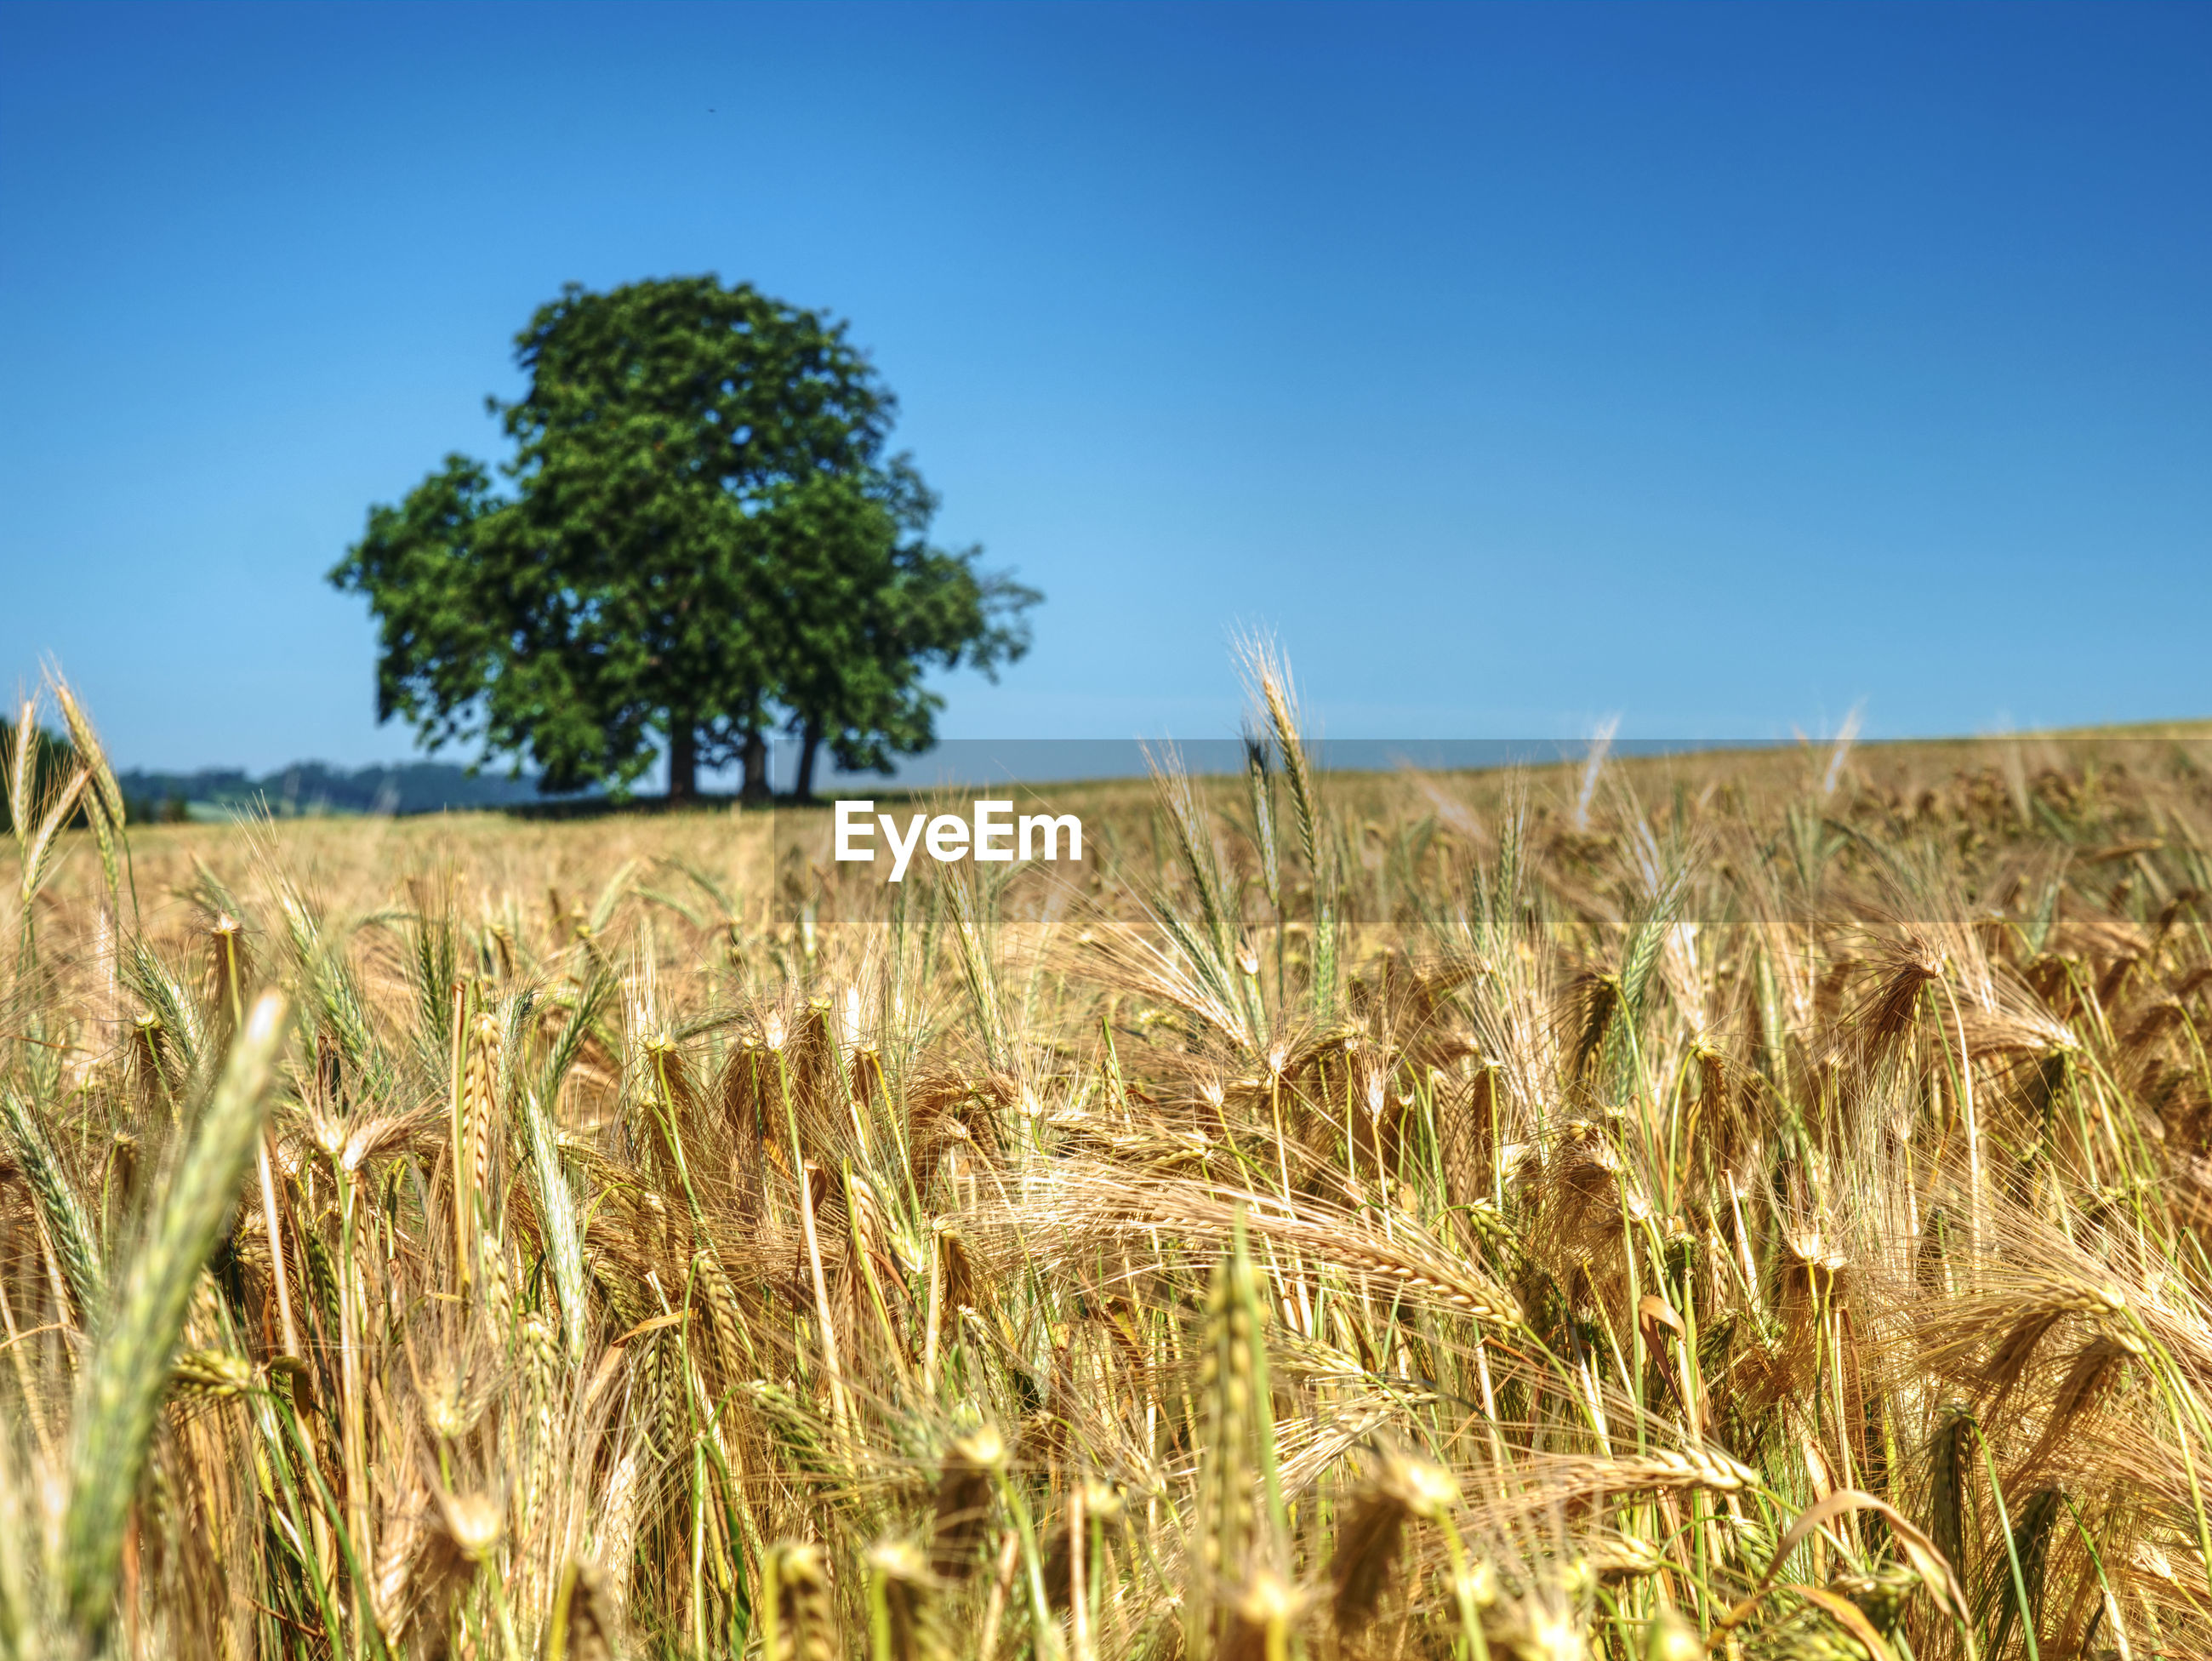 VIEW OF WHEAT FIELD AGAINST CLEAR SKY